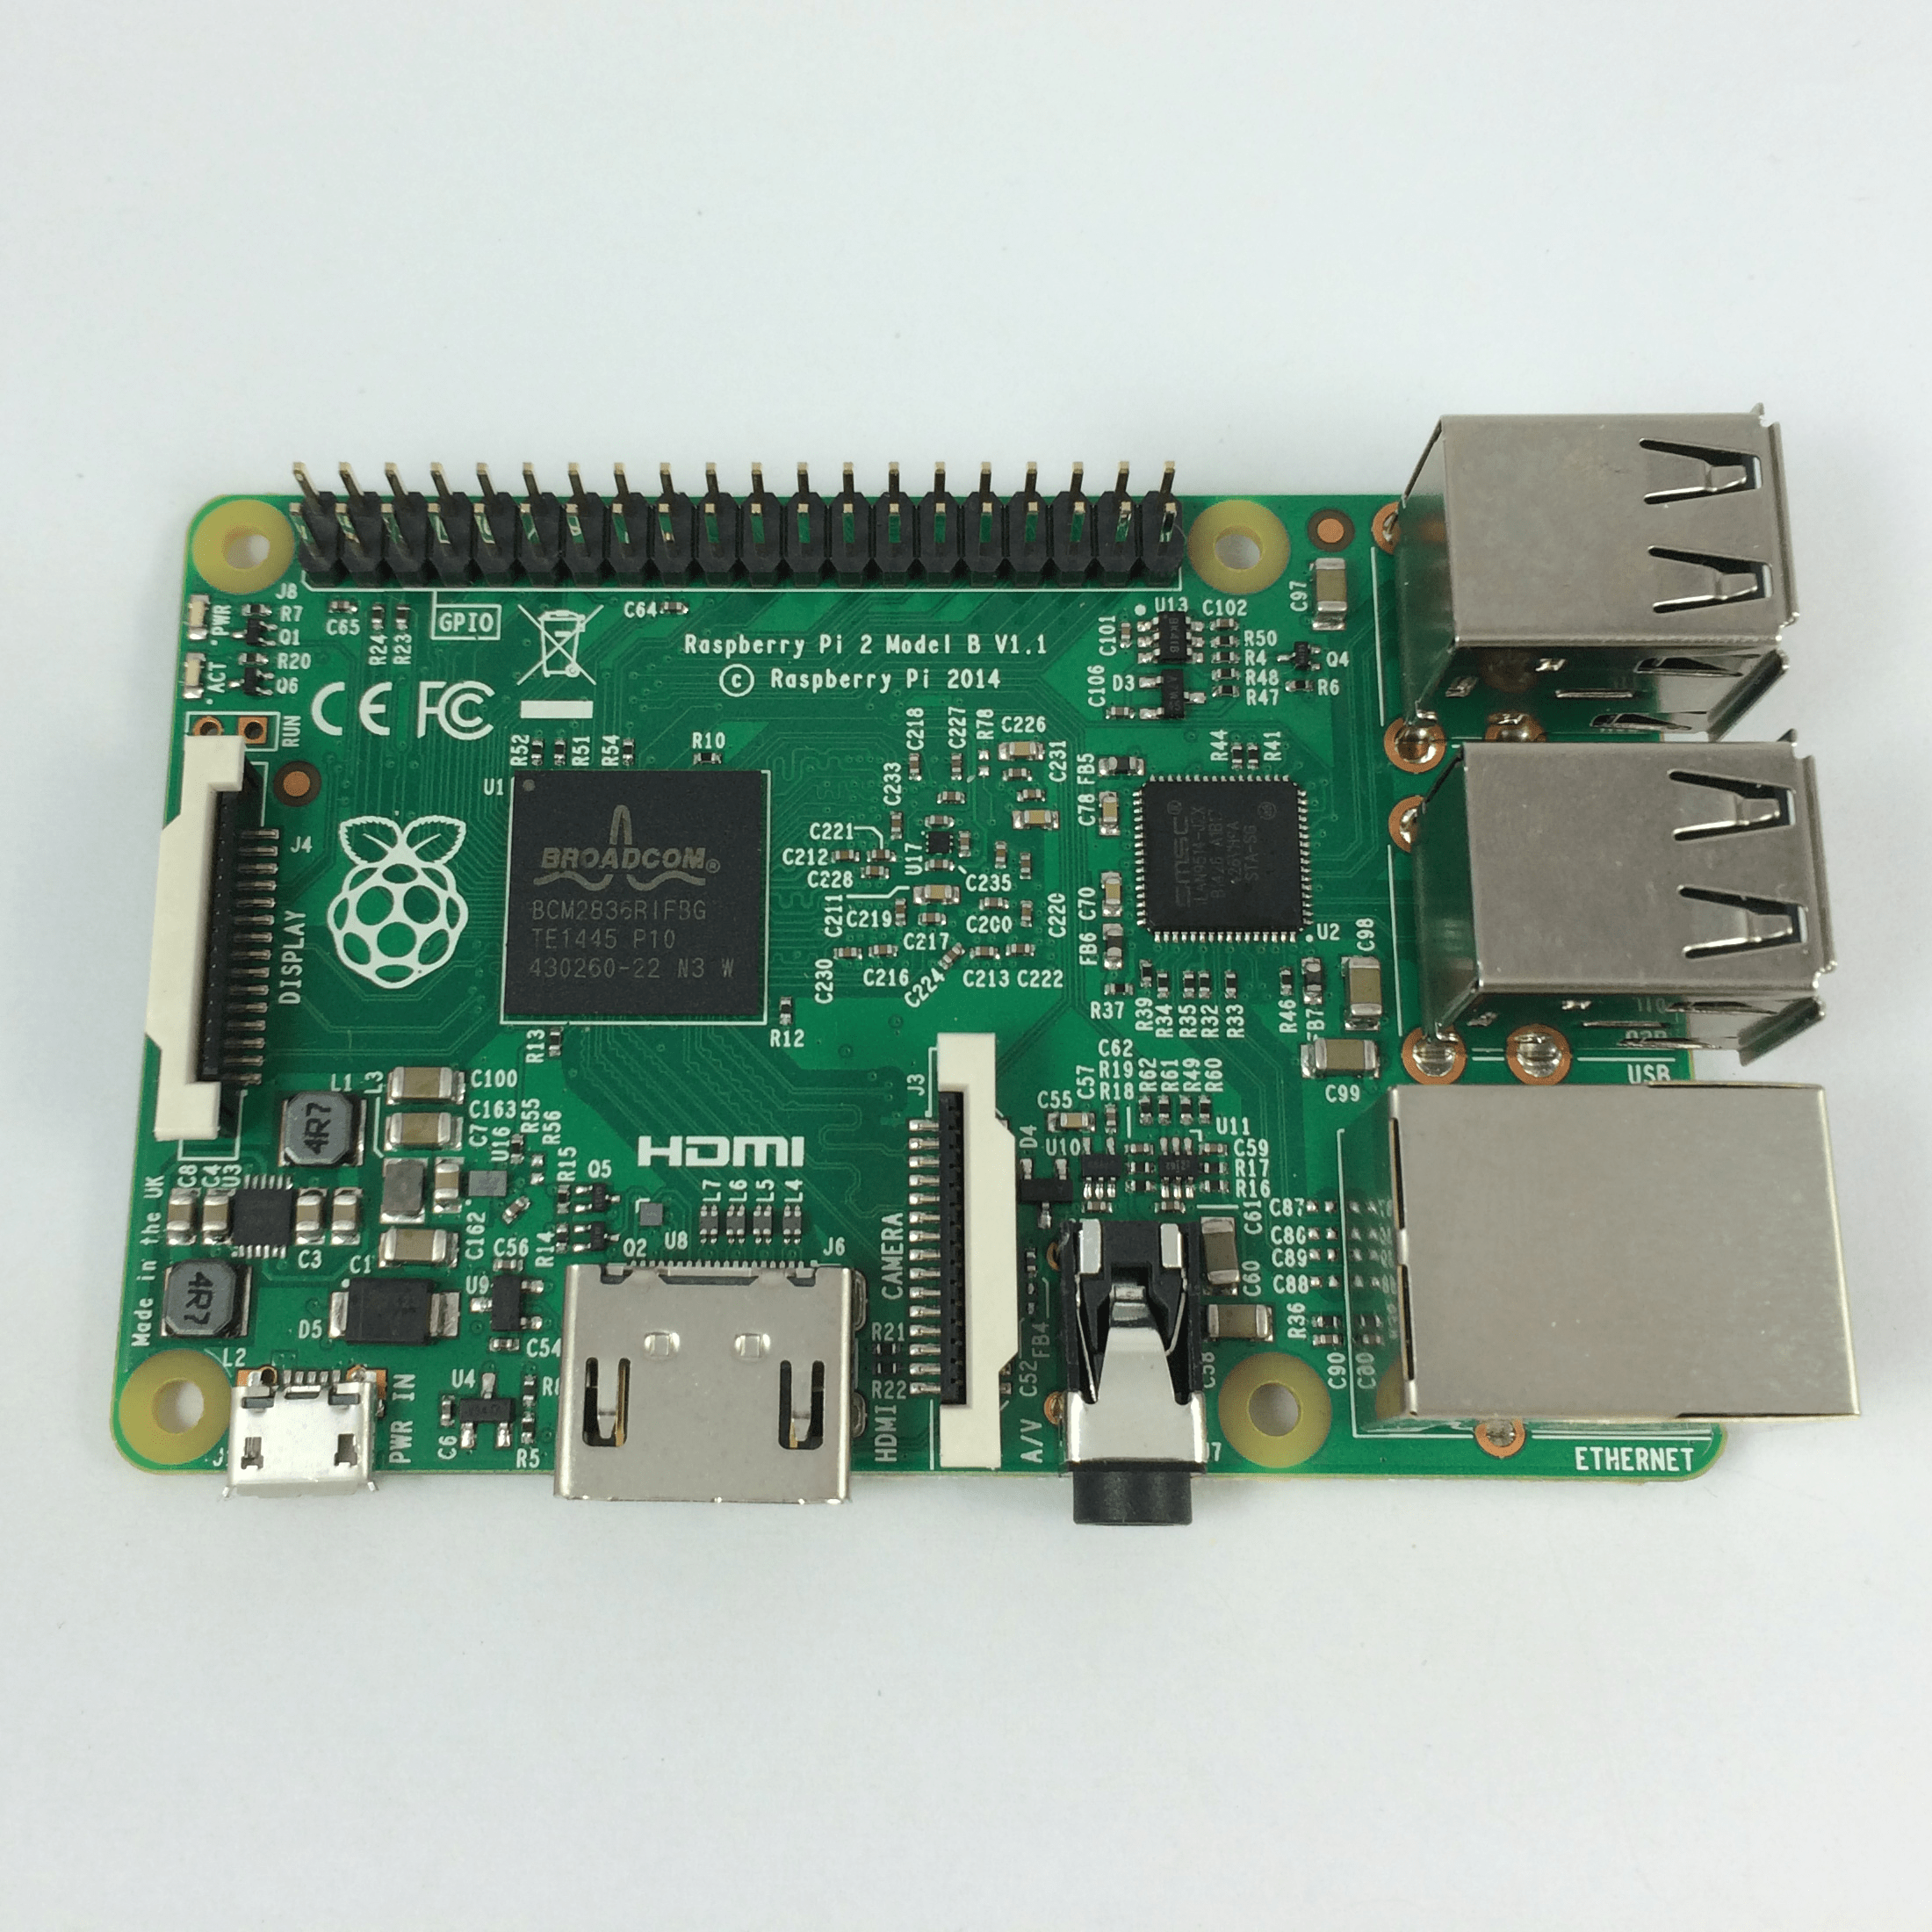 Microsoft Announces Windows Support for the Raspberry Pi 2